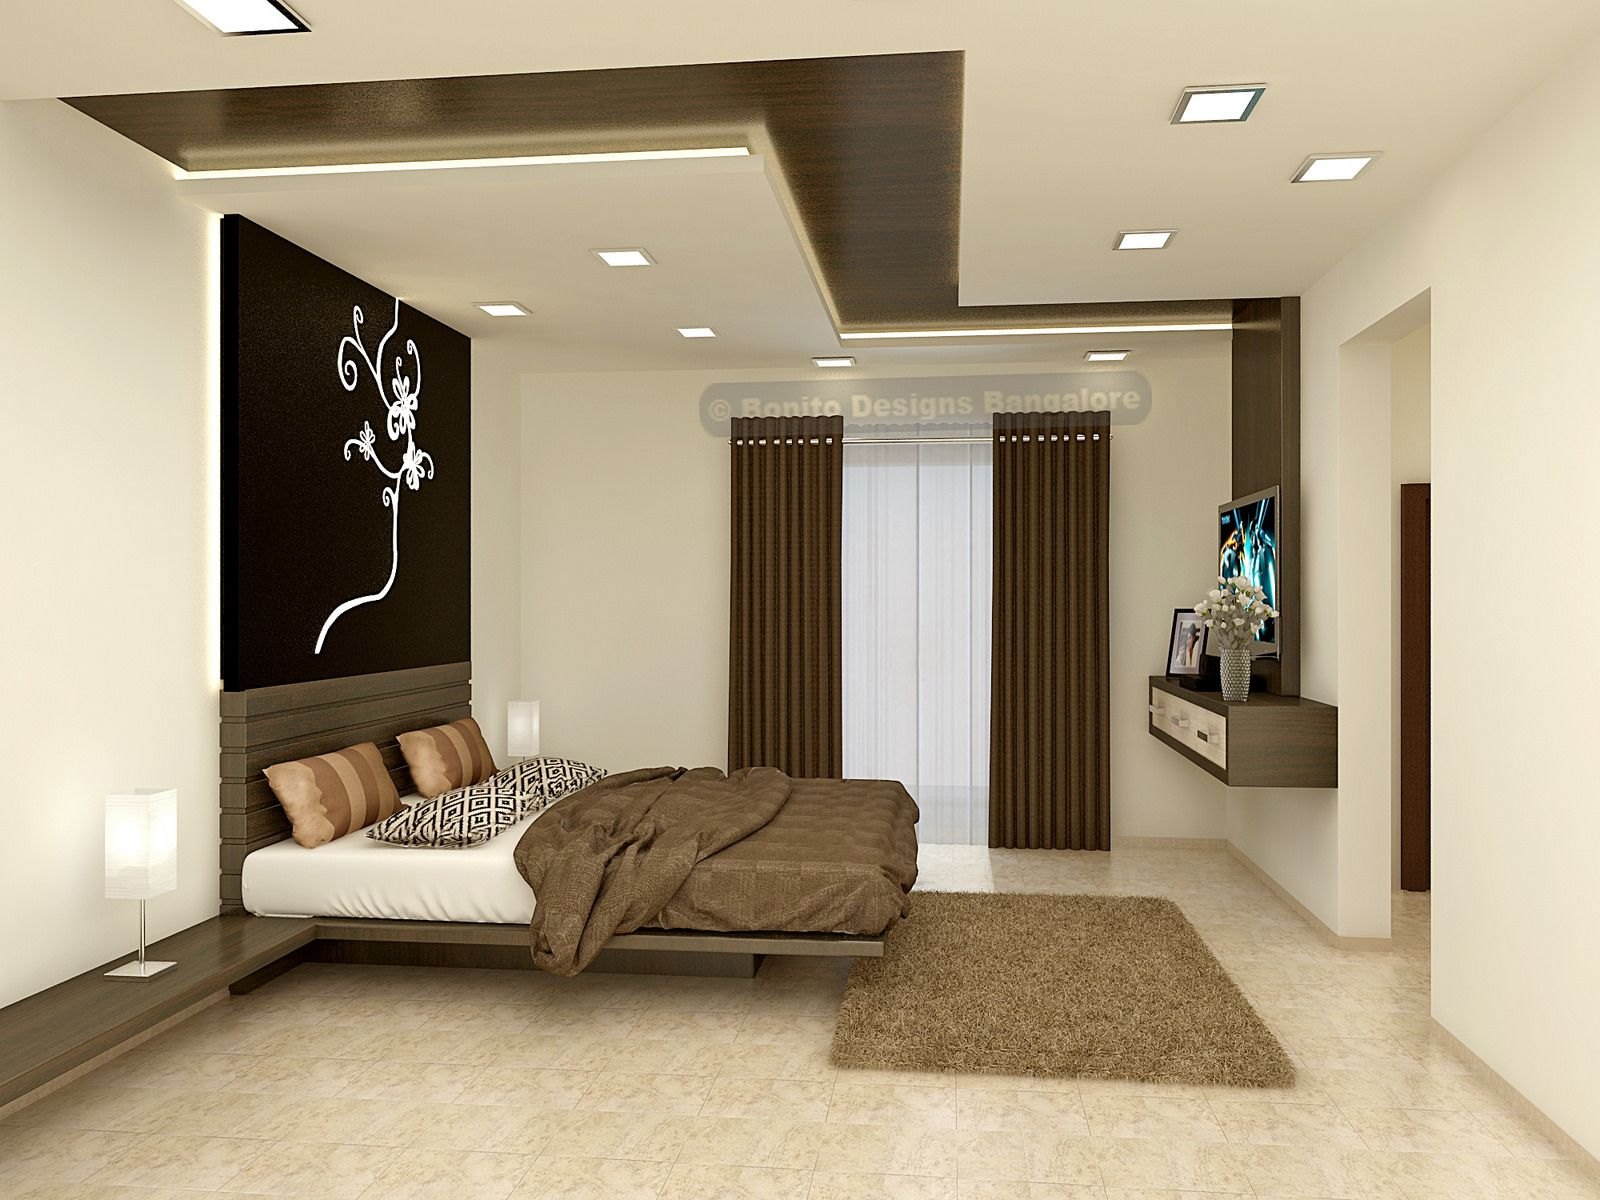 Sandepmbr 1 ceilings bedrooms and ceiling Cot design for master bedroom